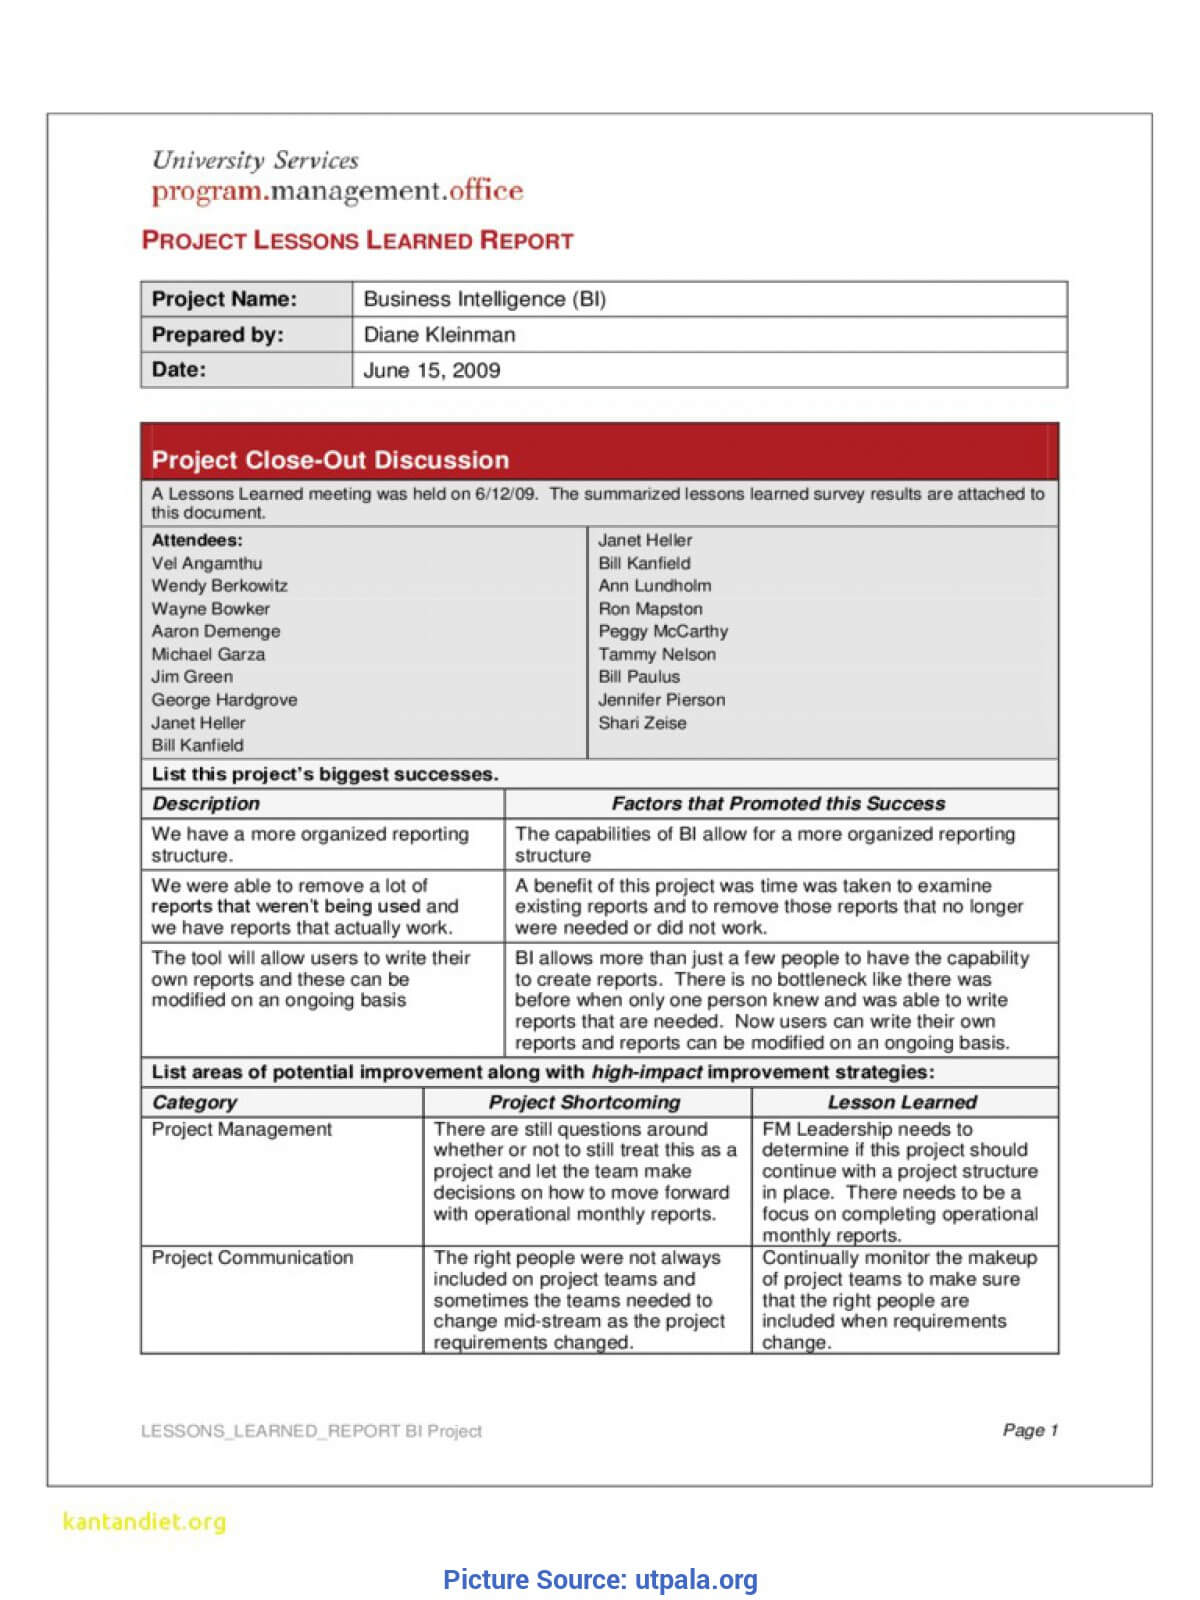 Trending Lessons Learned Document Management Lovely Lessons With Lessons Learnt Report Template